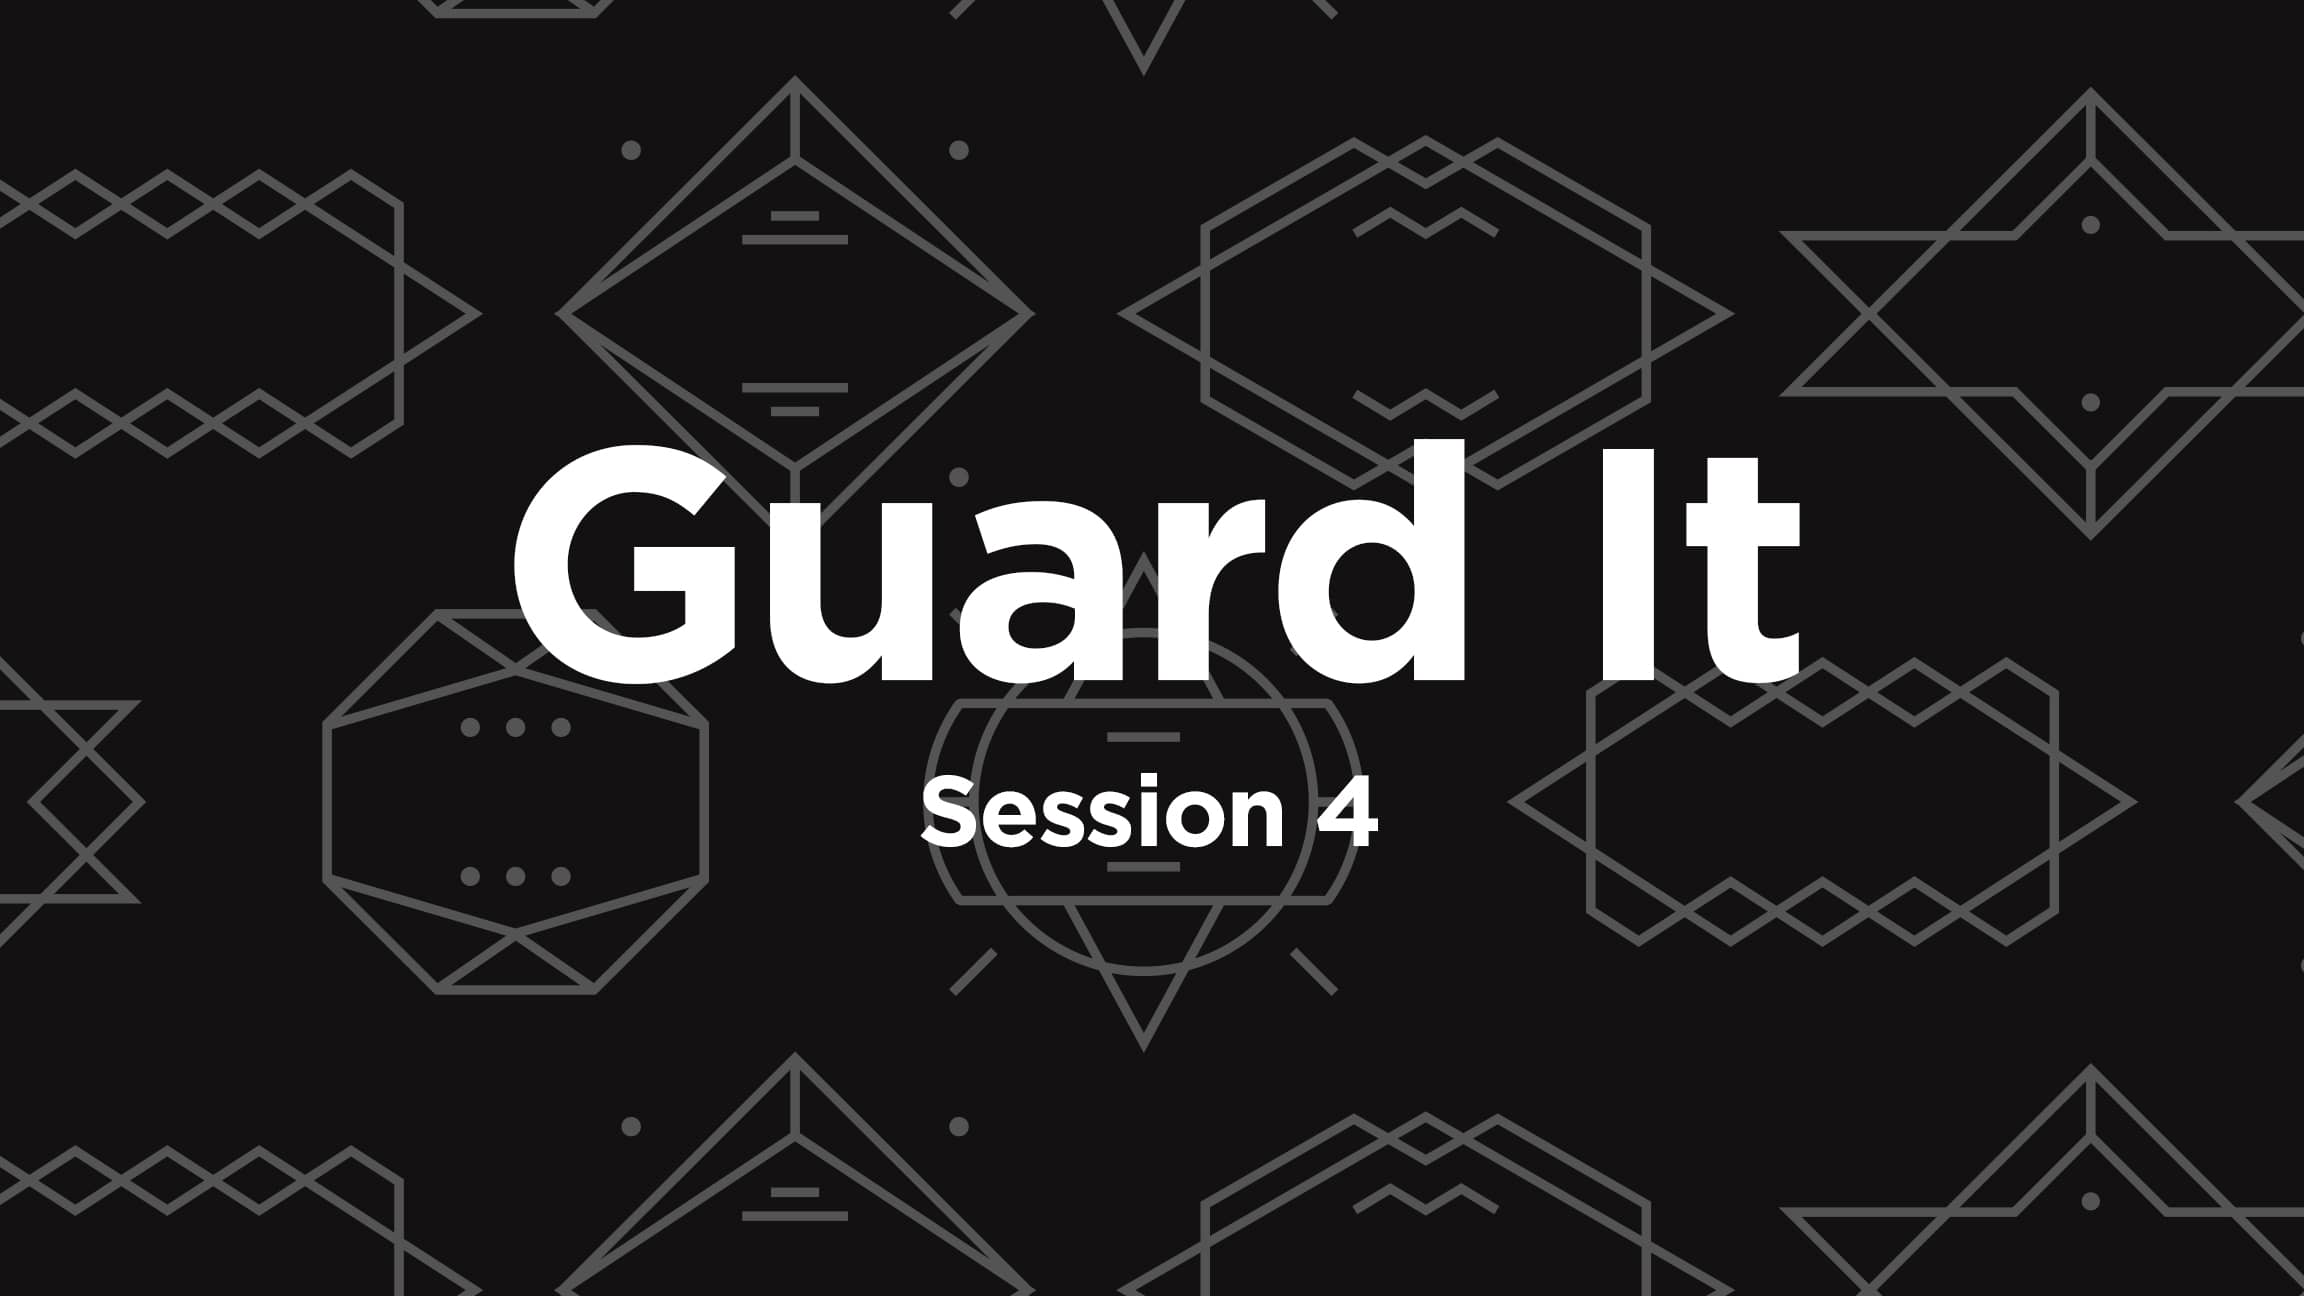 session-4-guard-it-recent-curriculum-img